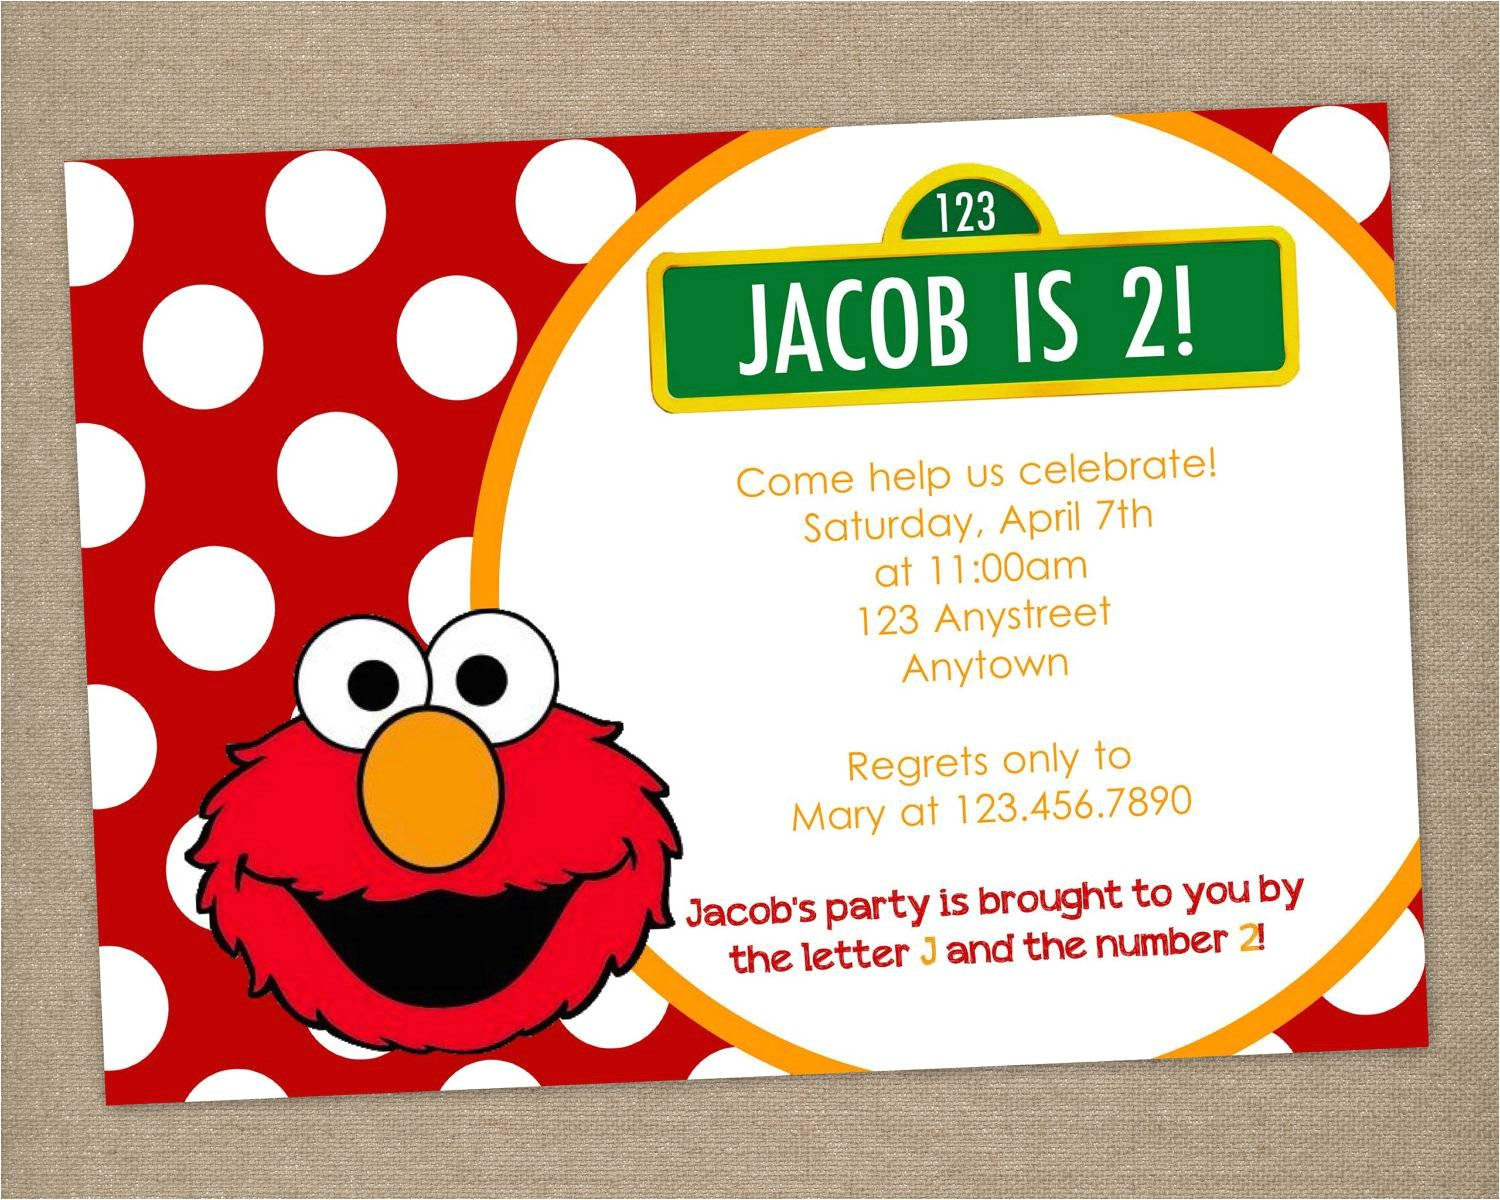 elmo invitation background wrphdwkwnyq99yzmha5r9qz jqvb0lfkczxdkmys7k